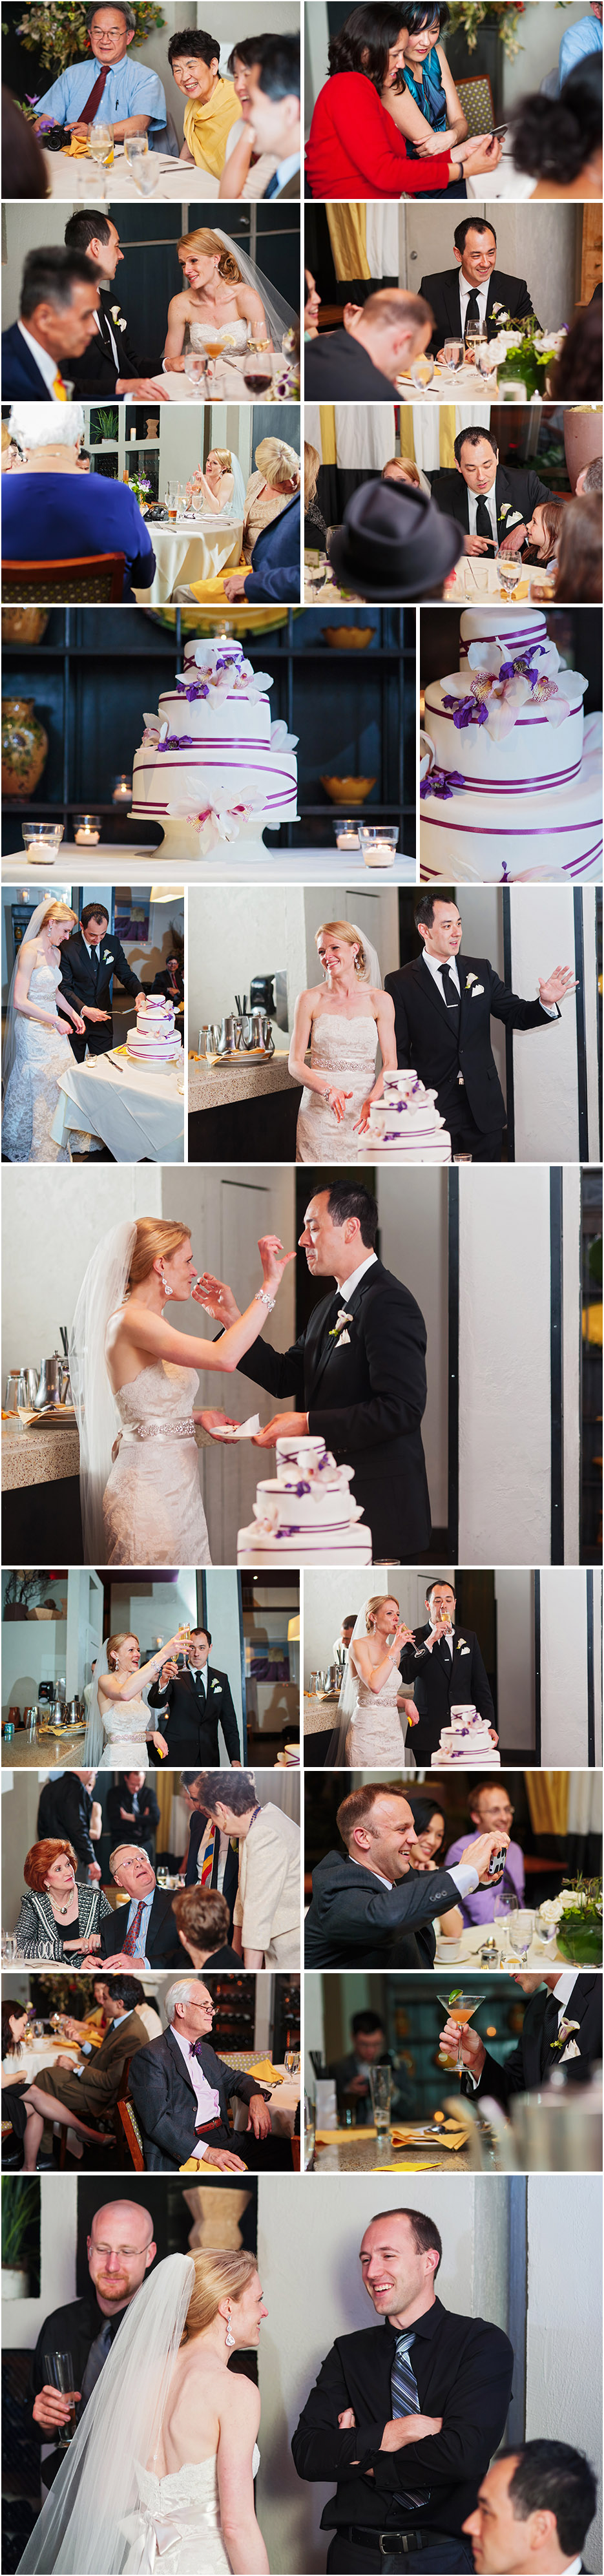 WEDDING PHOTOS MISTRAL BOSTON BACK BAY